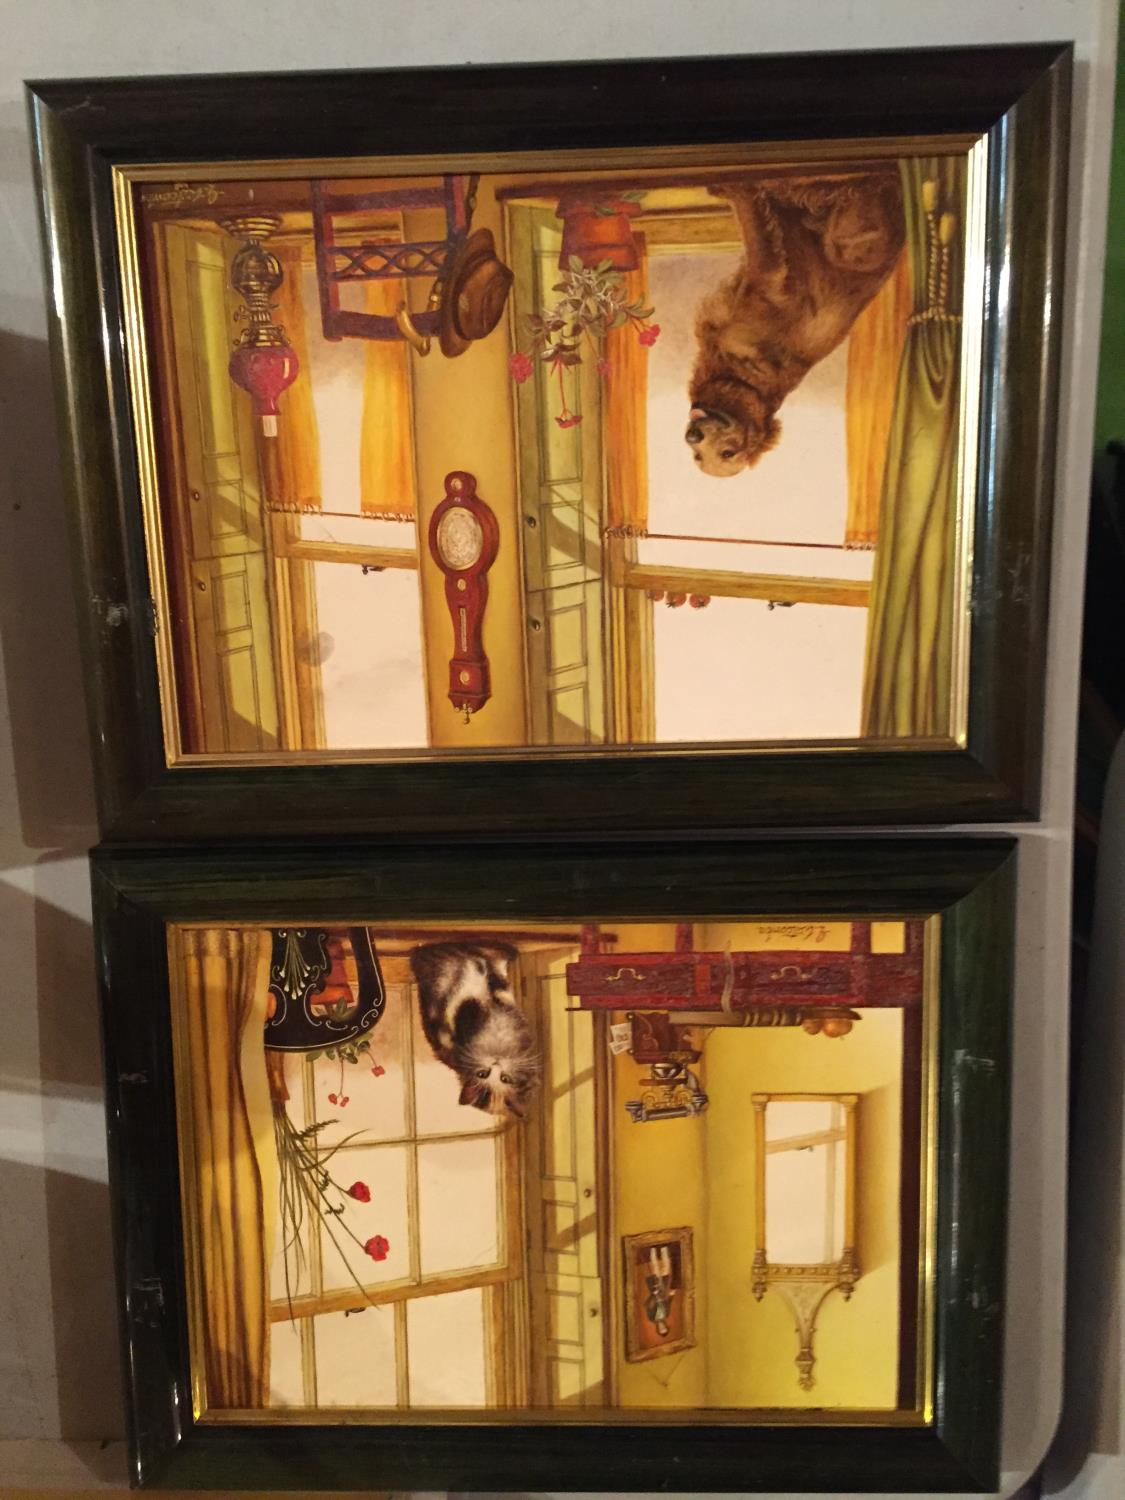 TWO FRAMED PAINTINGS OF A CAT IN A WINDOW AND A DOG IN A WINDOW